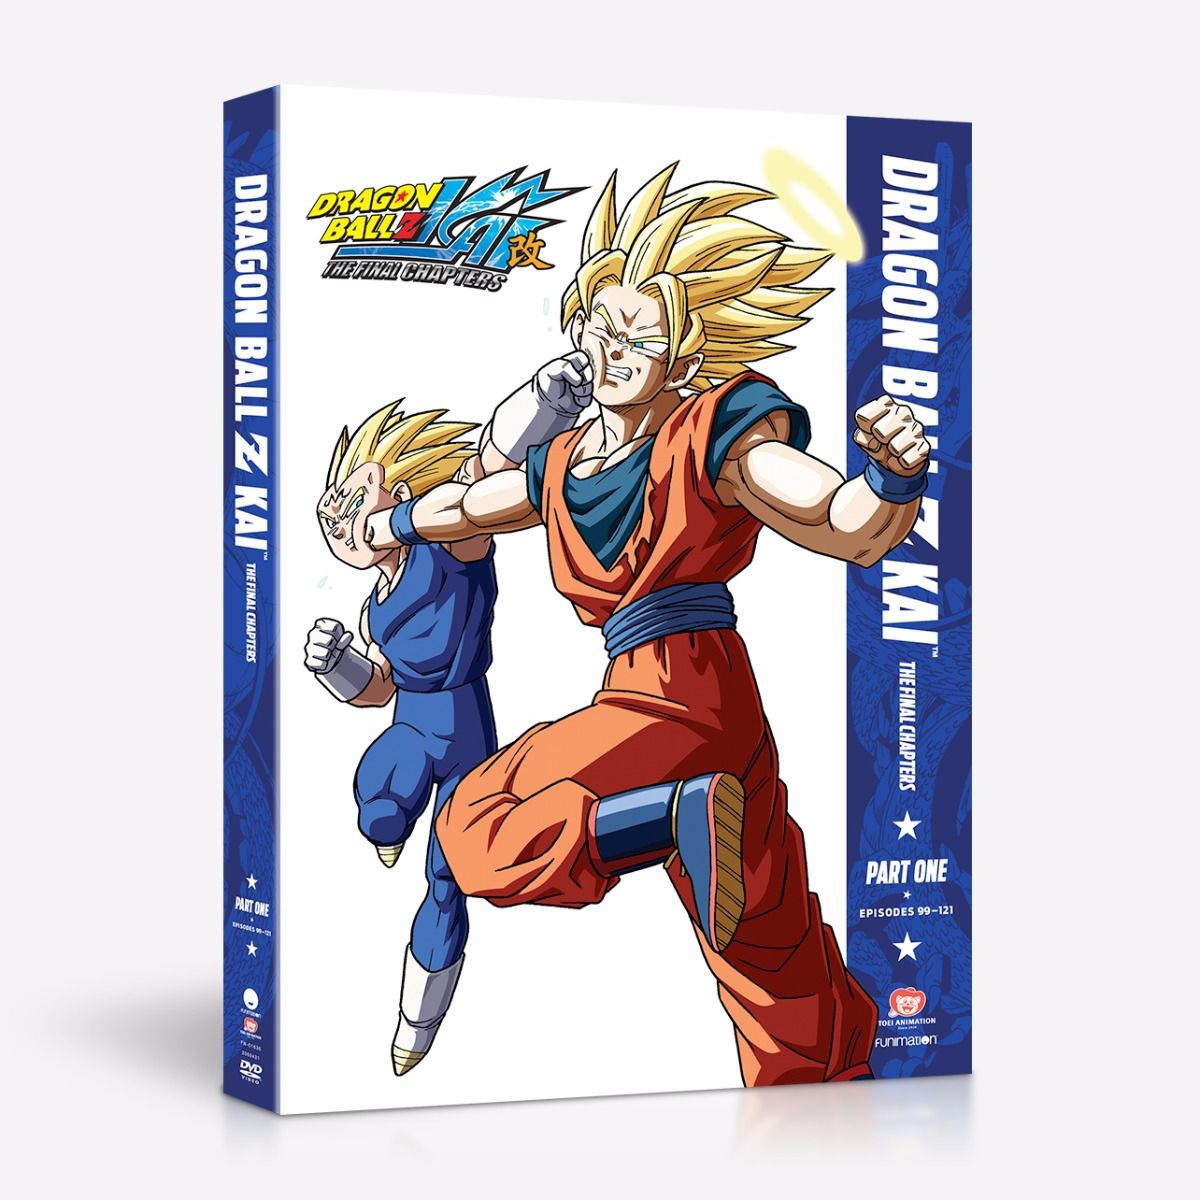 Dragon Ball Z Kai The Final Chapters Part 1 DVD 704400016363